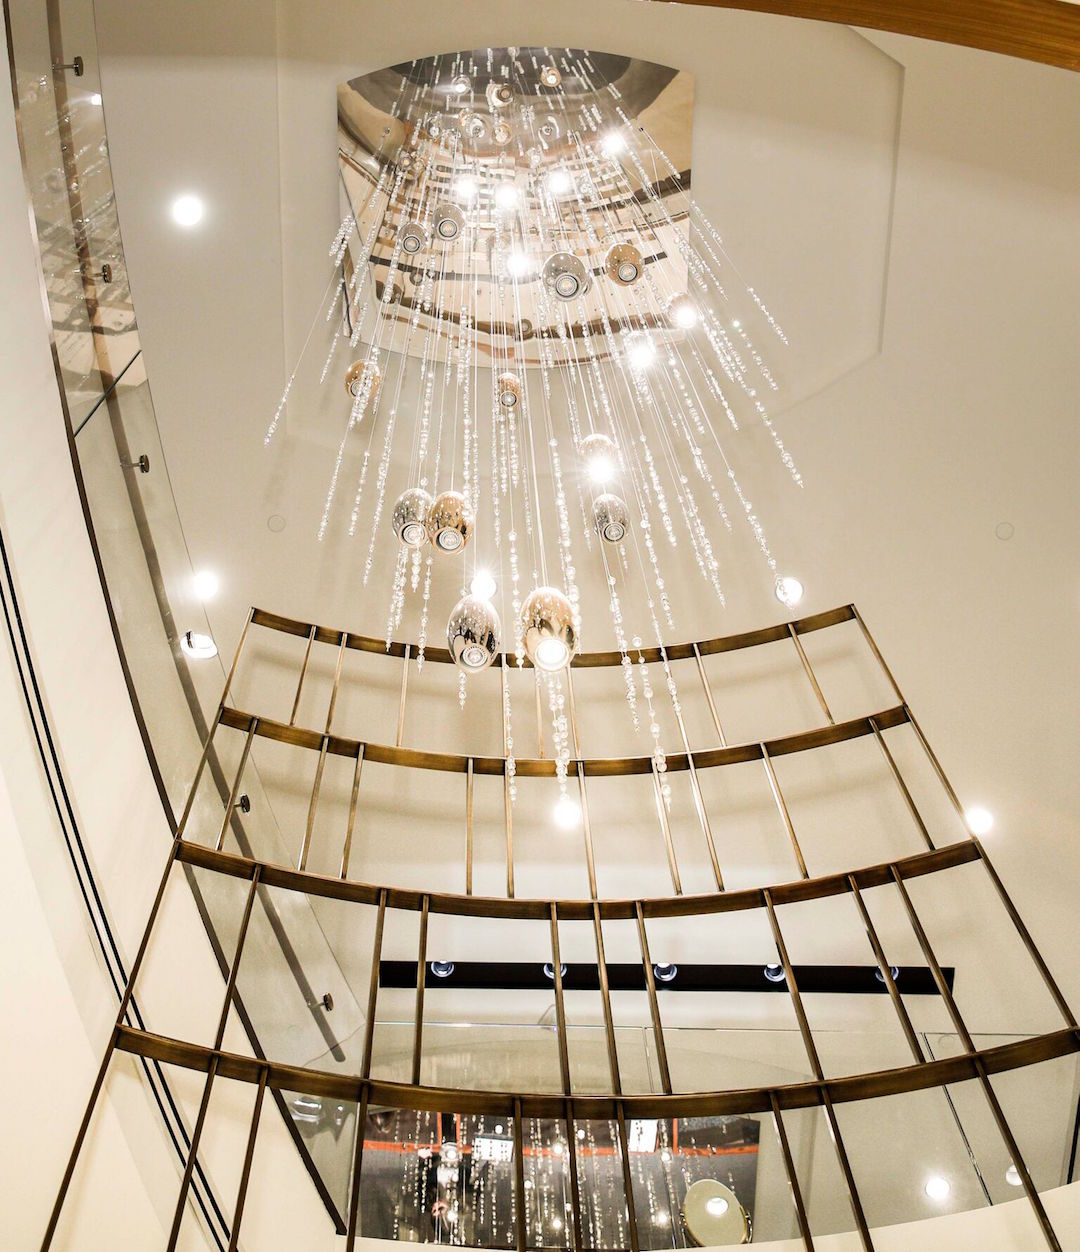 Shreve & Co.'s stunning chandelier